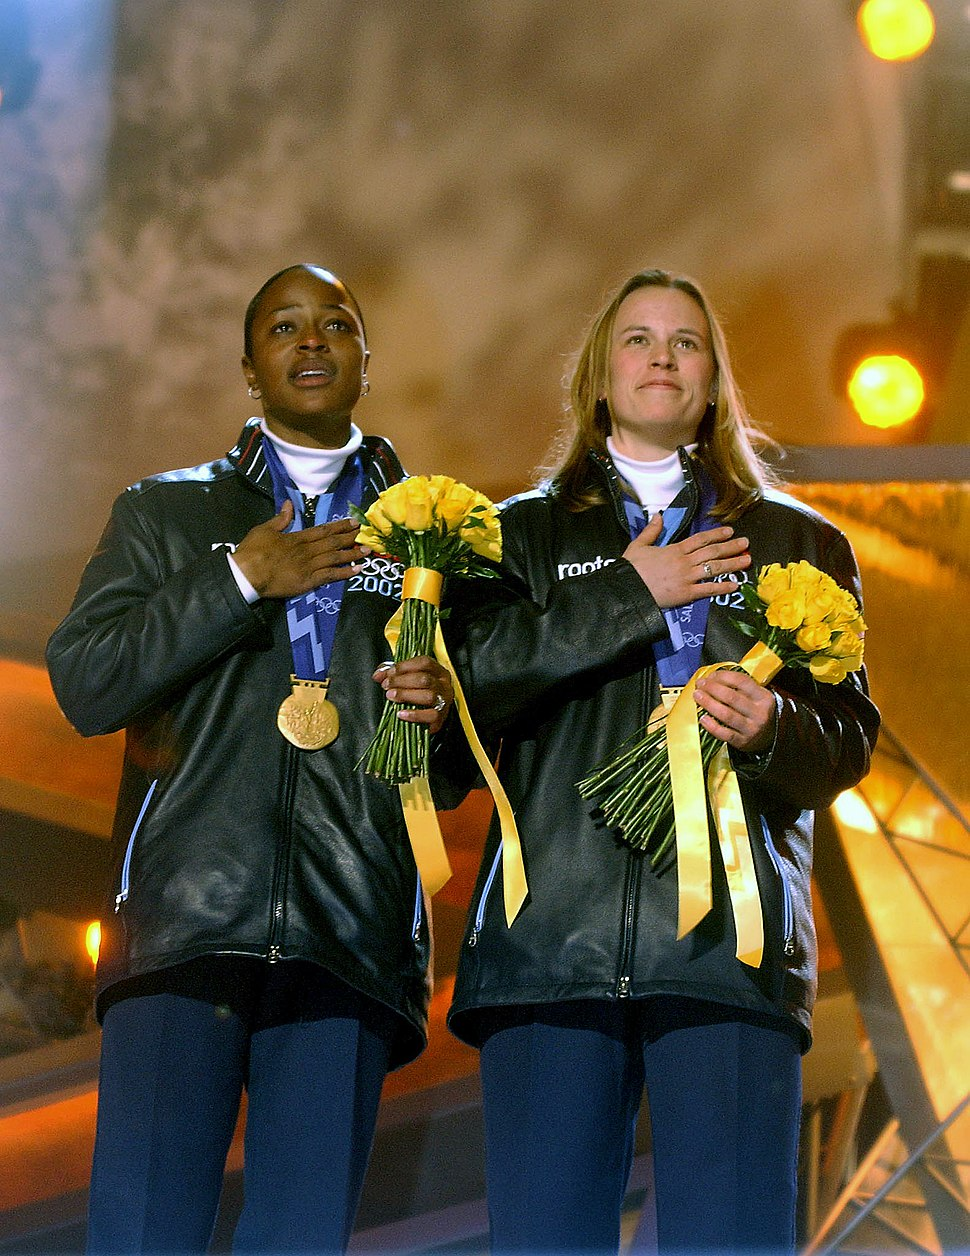 Vonetta Flowers and Jill Bakken during the medal ceremony in Salt Lake City.JPEG